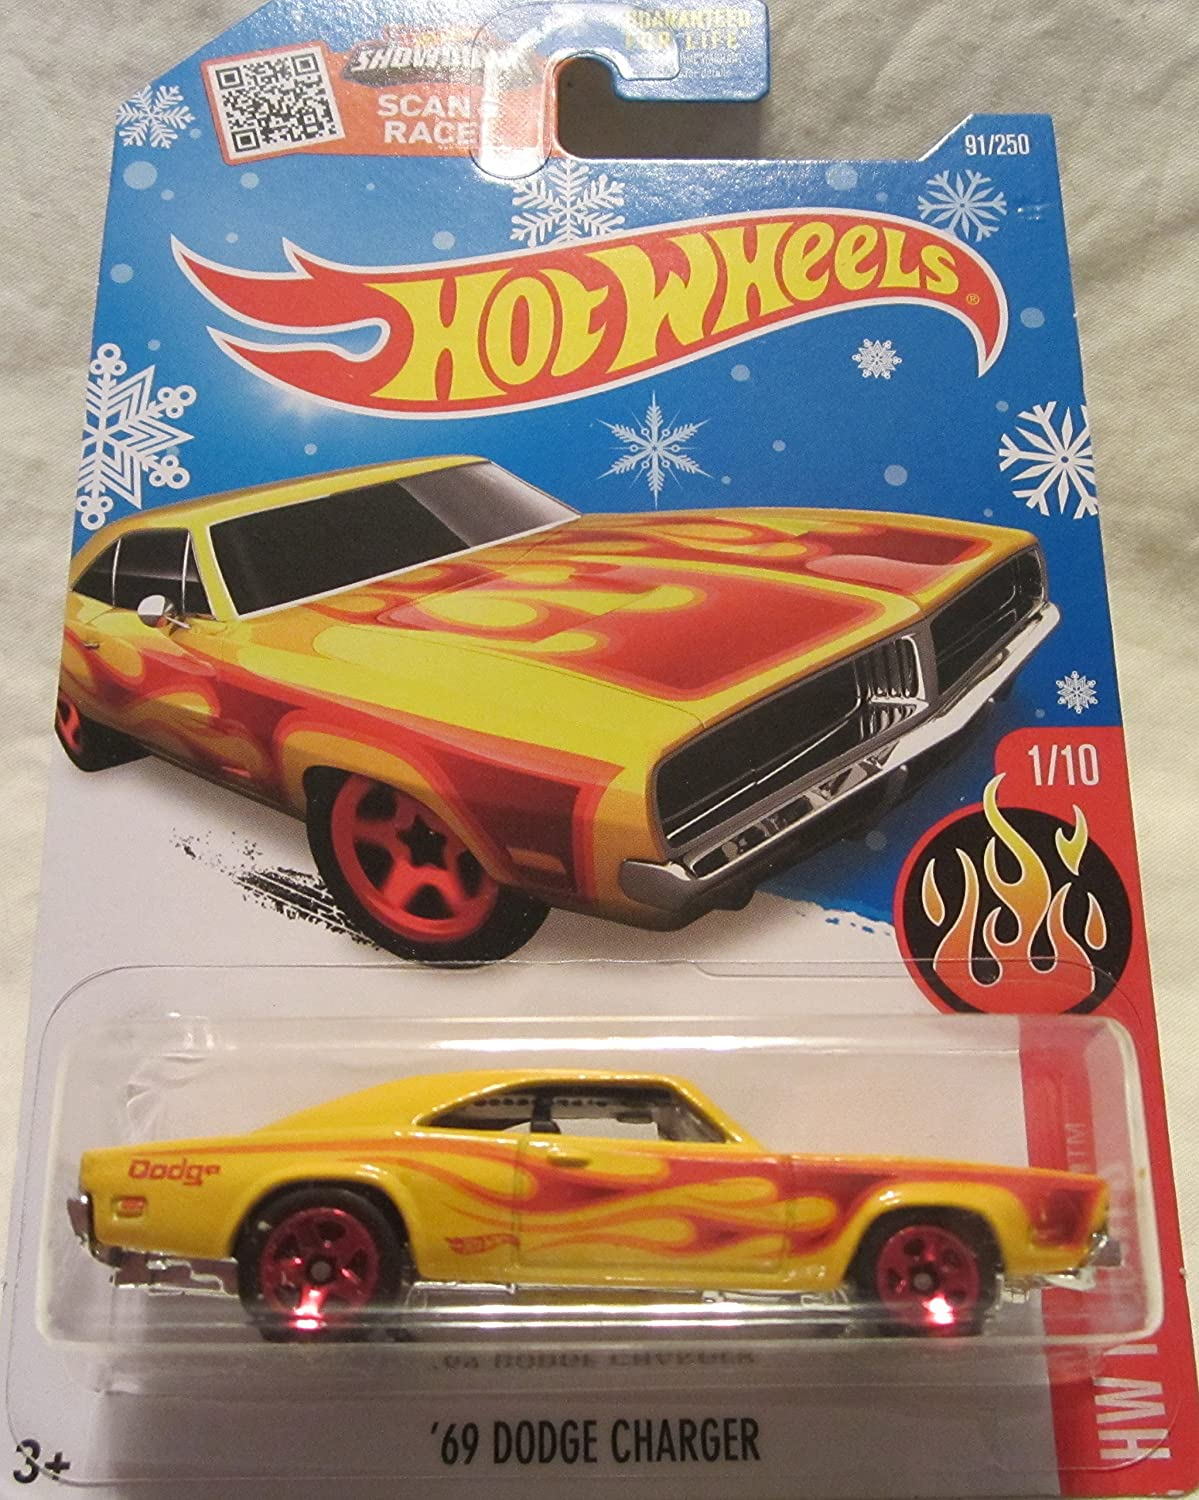 2016 Hot Wheels HW Flames '69 Dodge Charger 91/250 Snowflake Exclusive